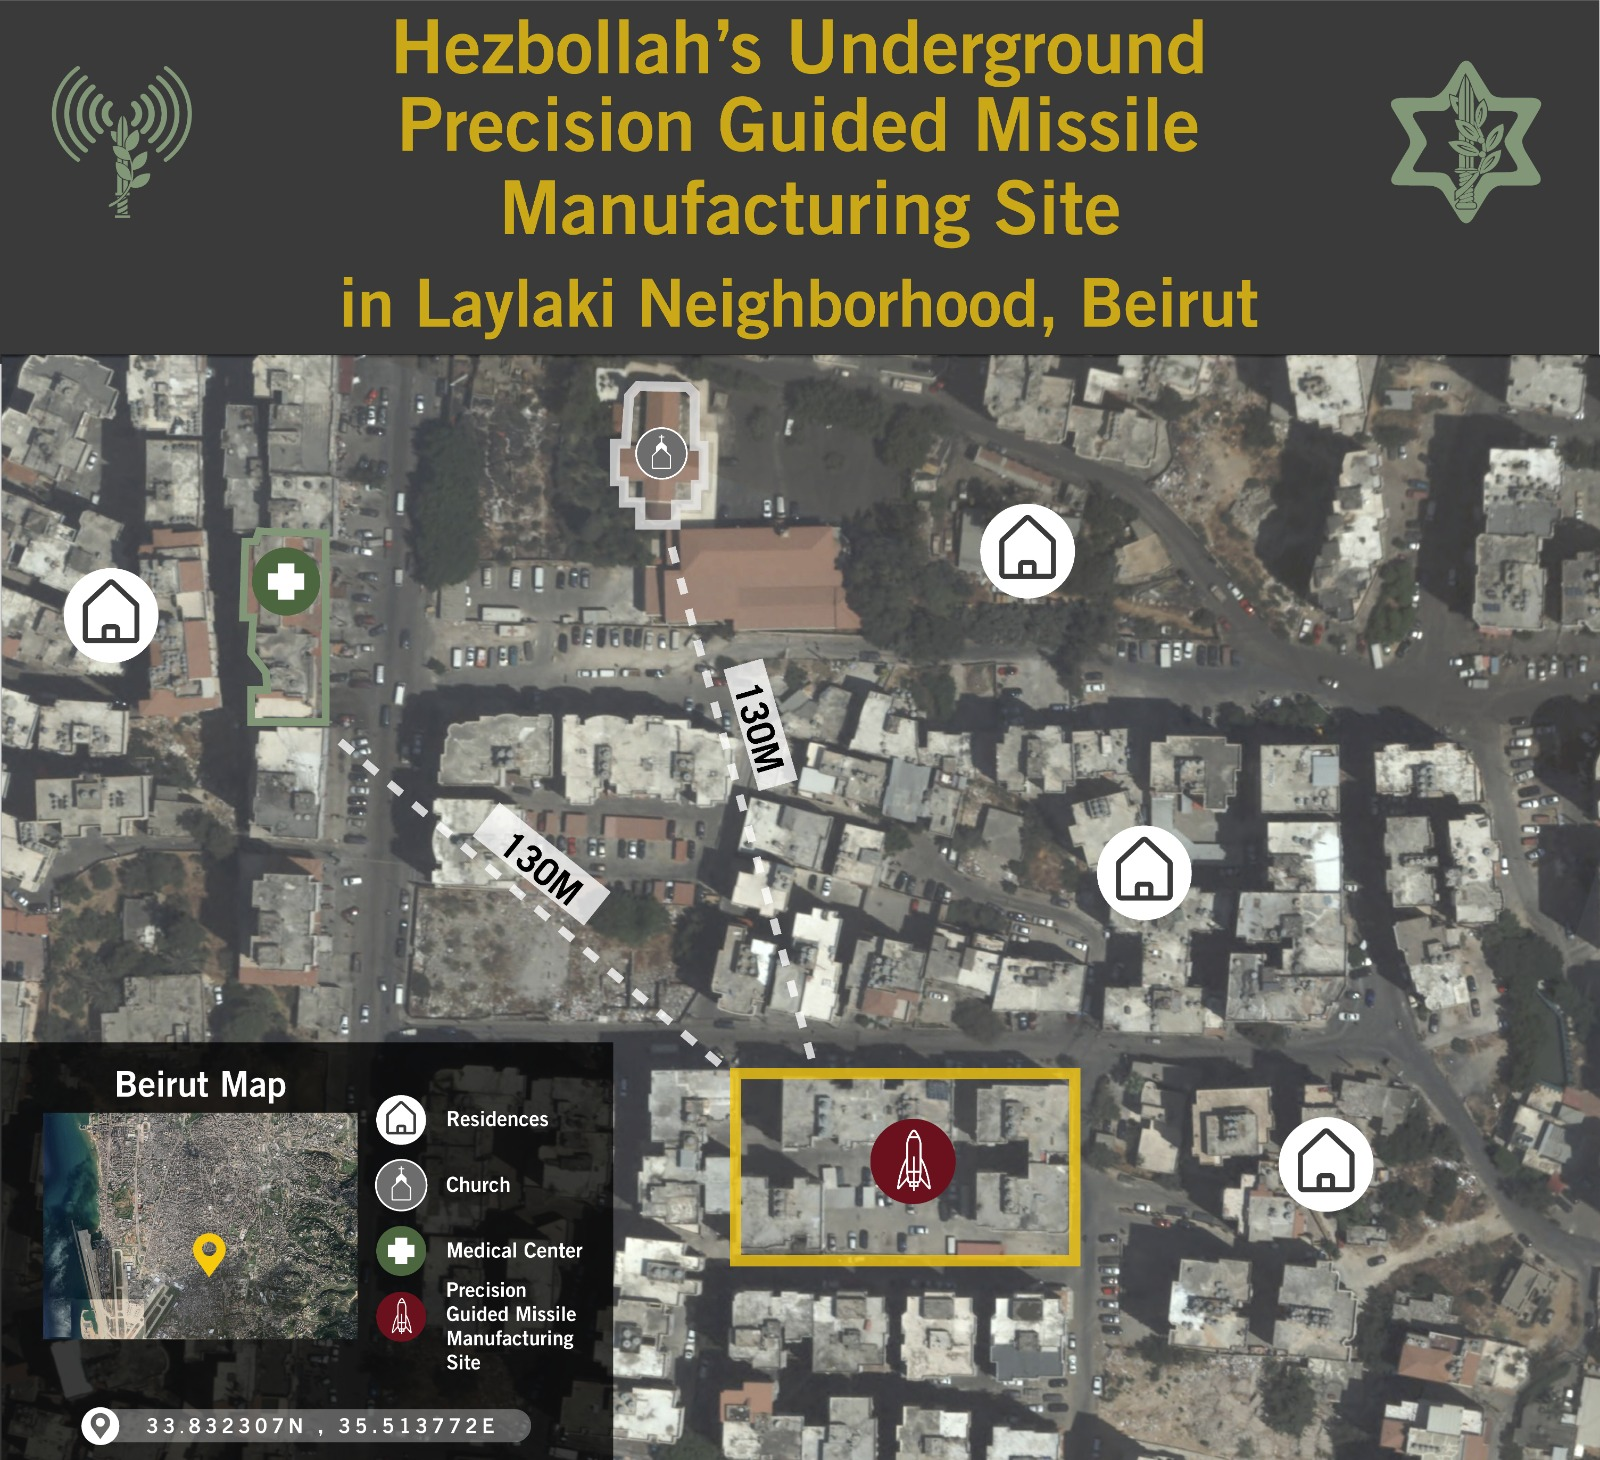 Israel Releases Report About Hezbollah's Alleged Missile Factory In Beirut Residential Area